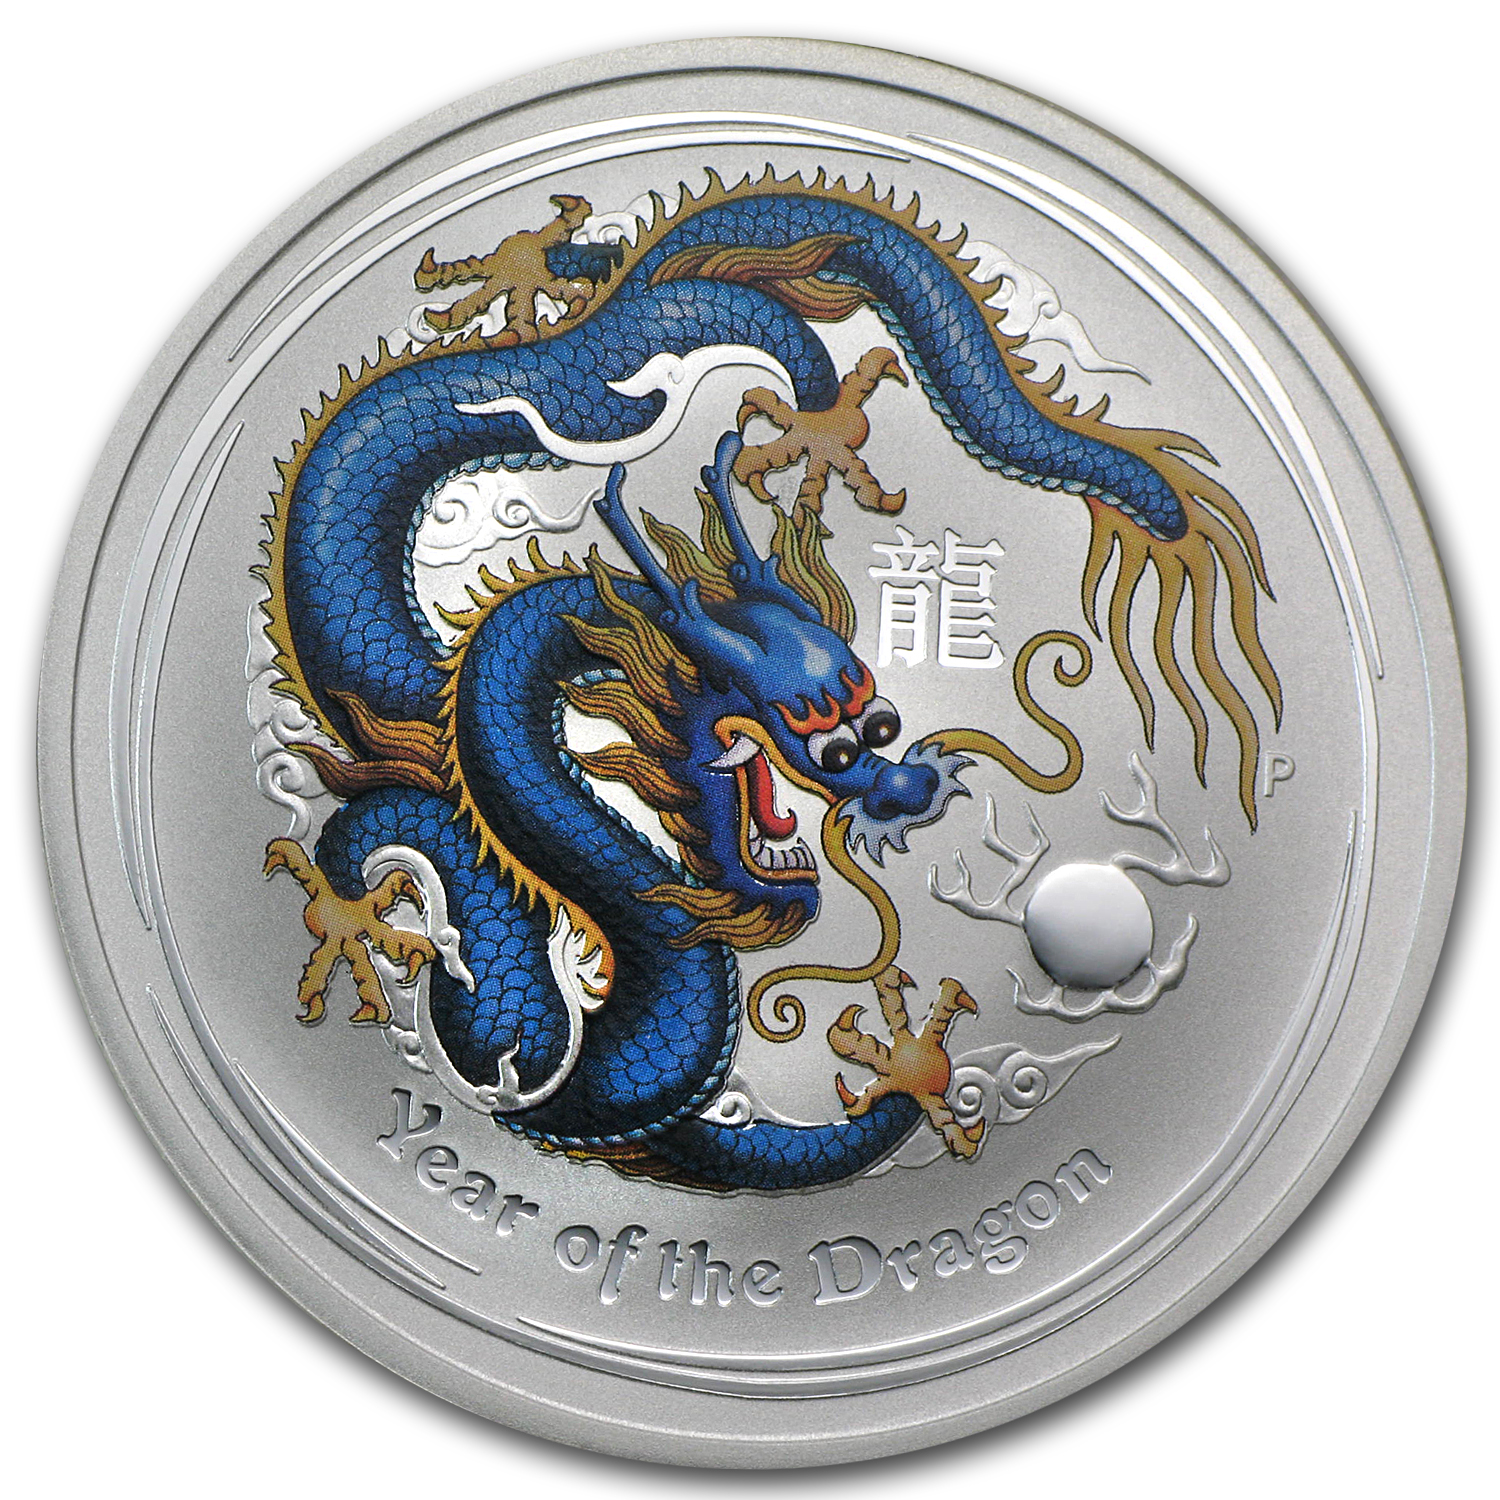 2012 Australia 1 oz Silver Dragon BU (Blue Colorized)